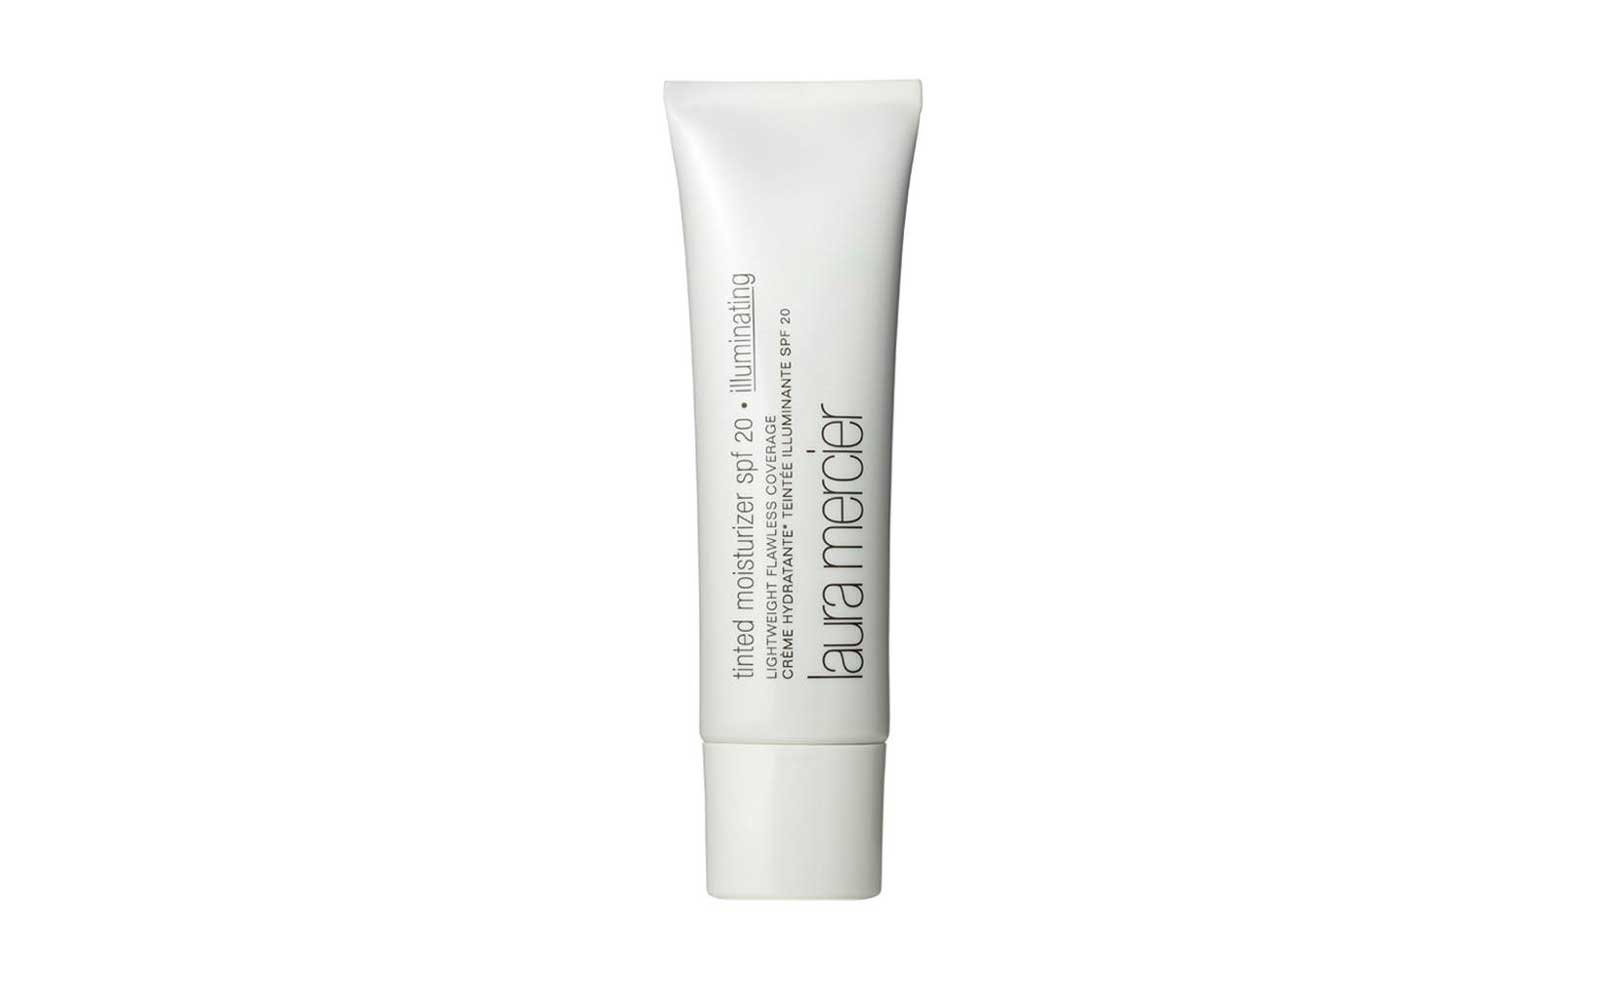 Laura Mercier Illuminating Primer